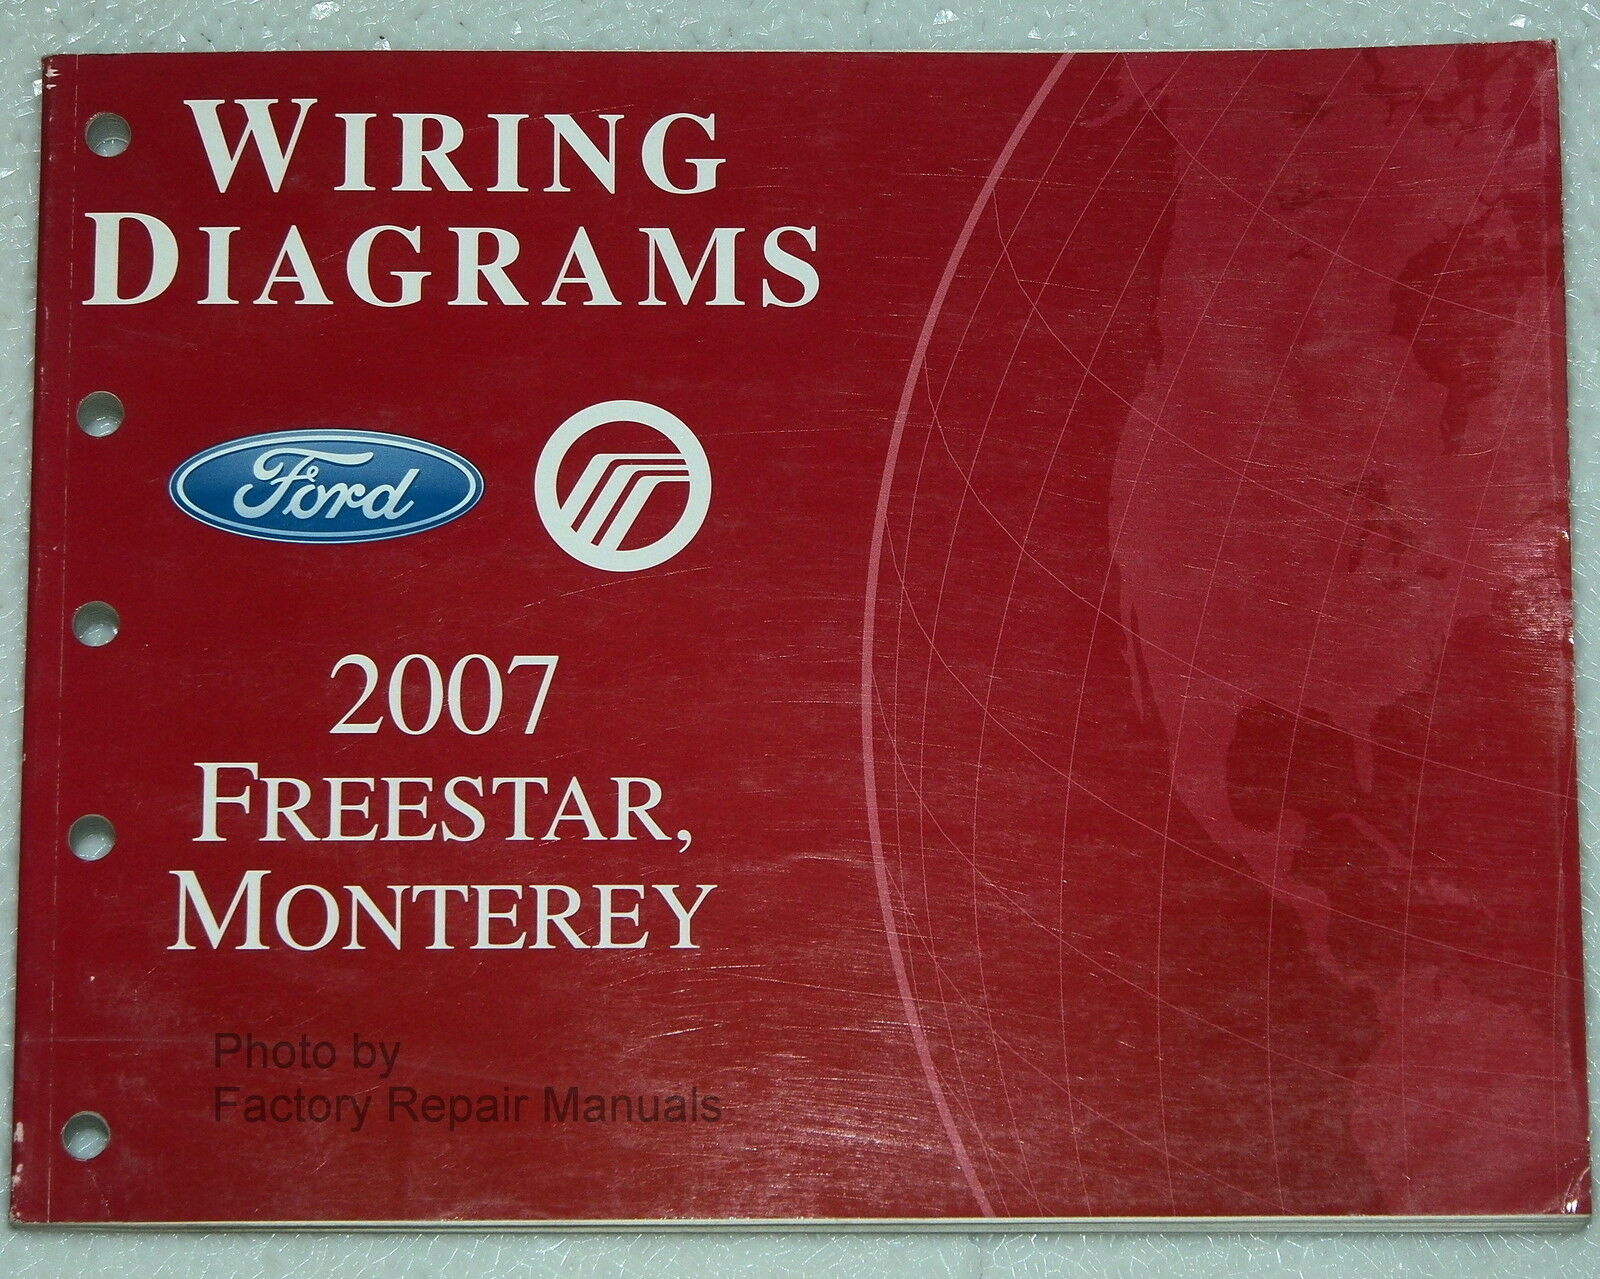 2007 Ford Freestar Mercury Monterey Electrical Wiring Diagrams Shop 04 Diagram Manual 1 Of 1only Available